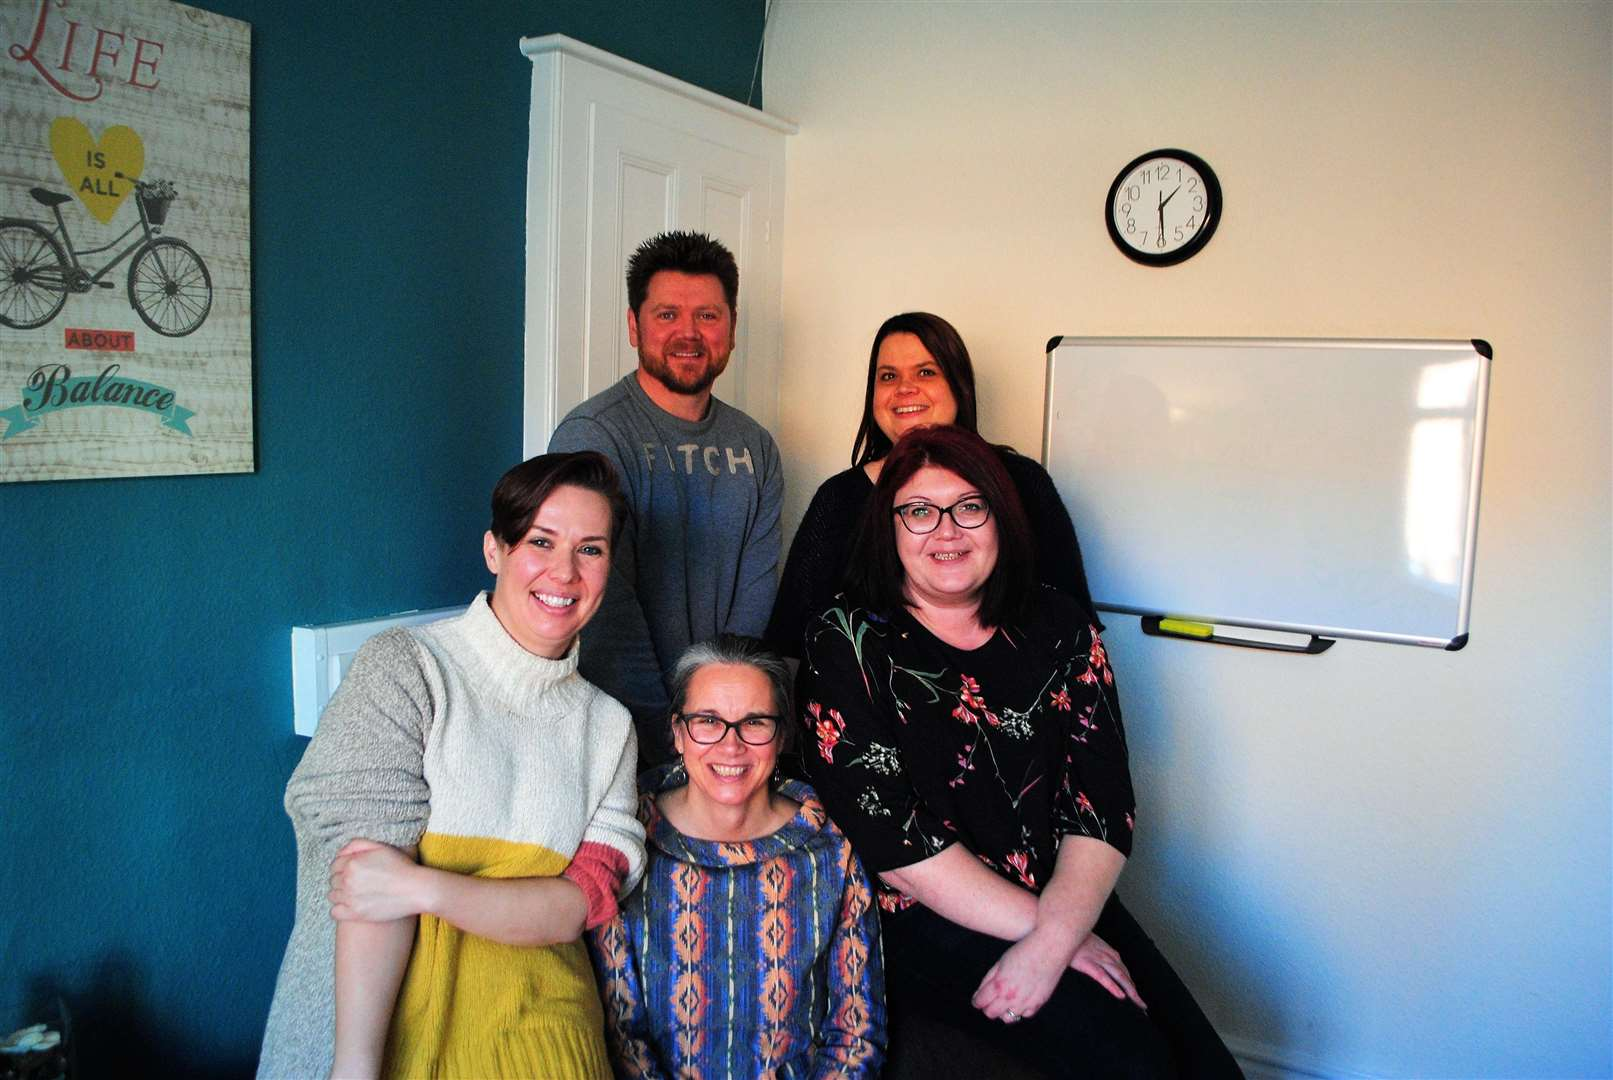 The Trust House Lincolnshire team, from left, front Lizzy Mills (lead counselling, university), Tracy Cryer (clinical lead) and Sian Reynolds (Communication and development officer); back, Neil Wells (CEO) and Michelle Tasker (lead counsellor). (6402450)